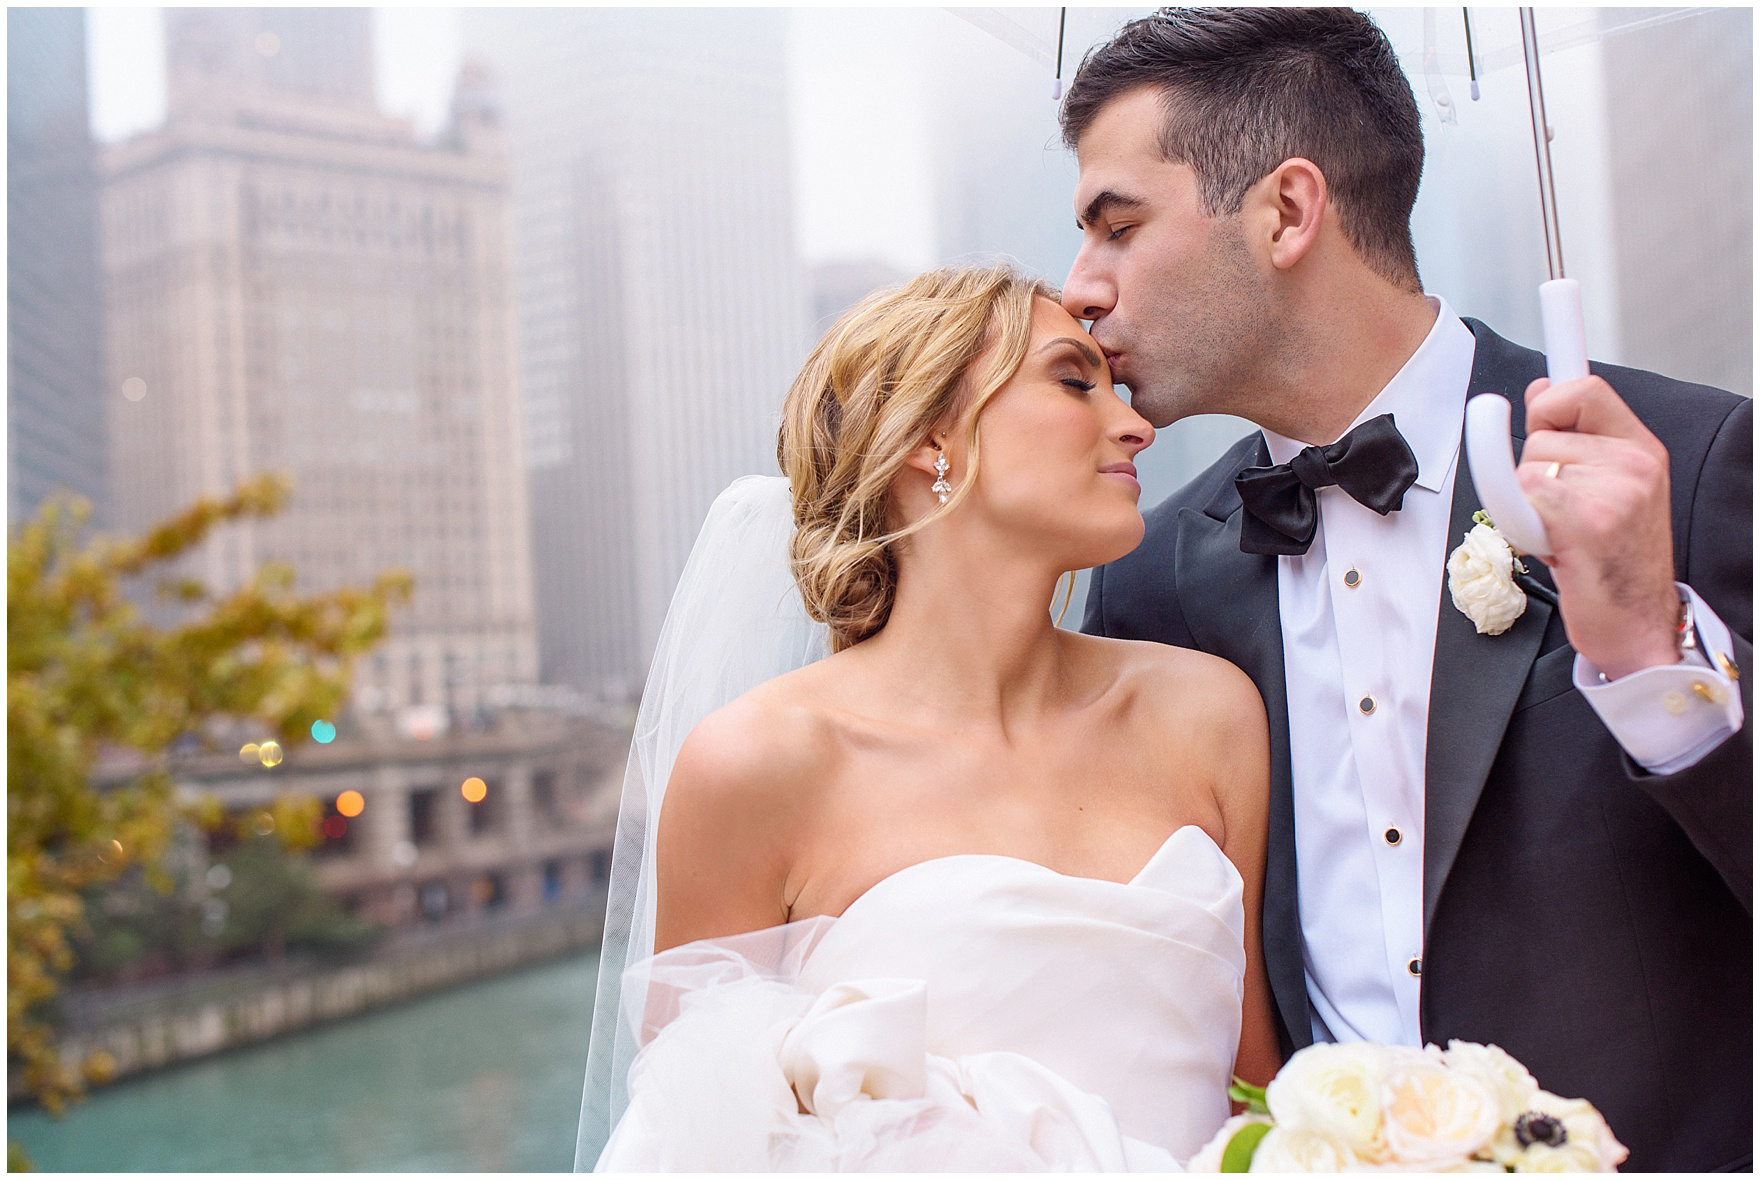 A groom kisses his bride under an umbrella in downtown Chicago during a St. Clement Germania Place Chicago wedding.